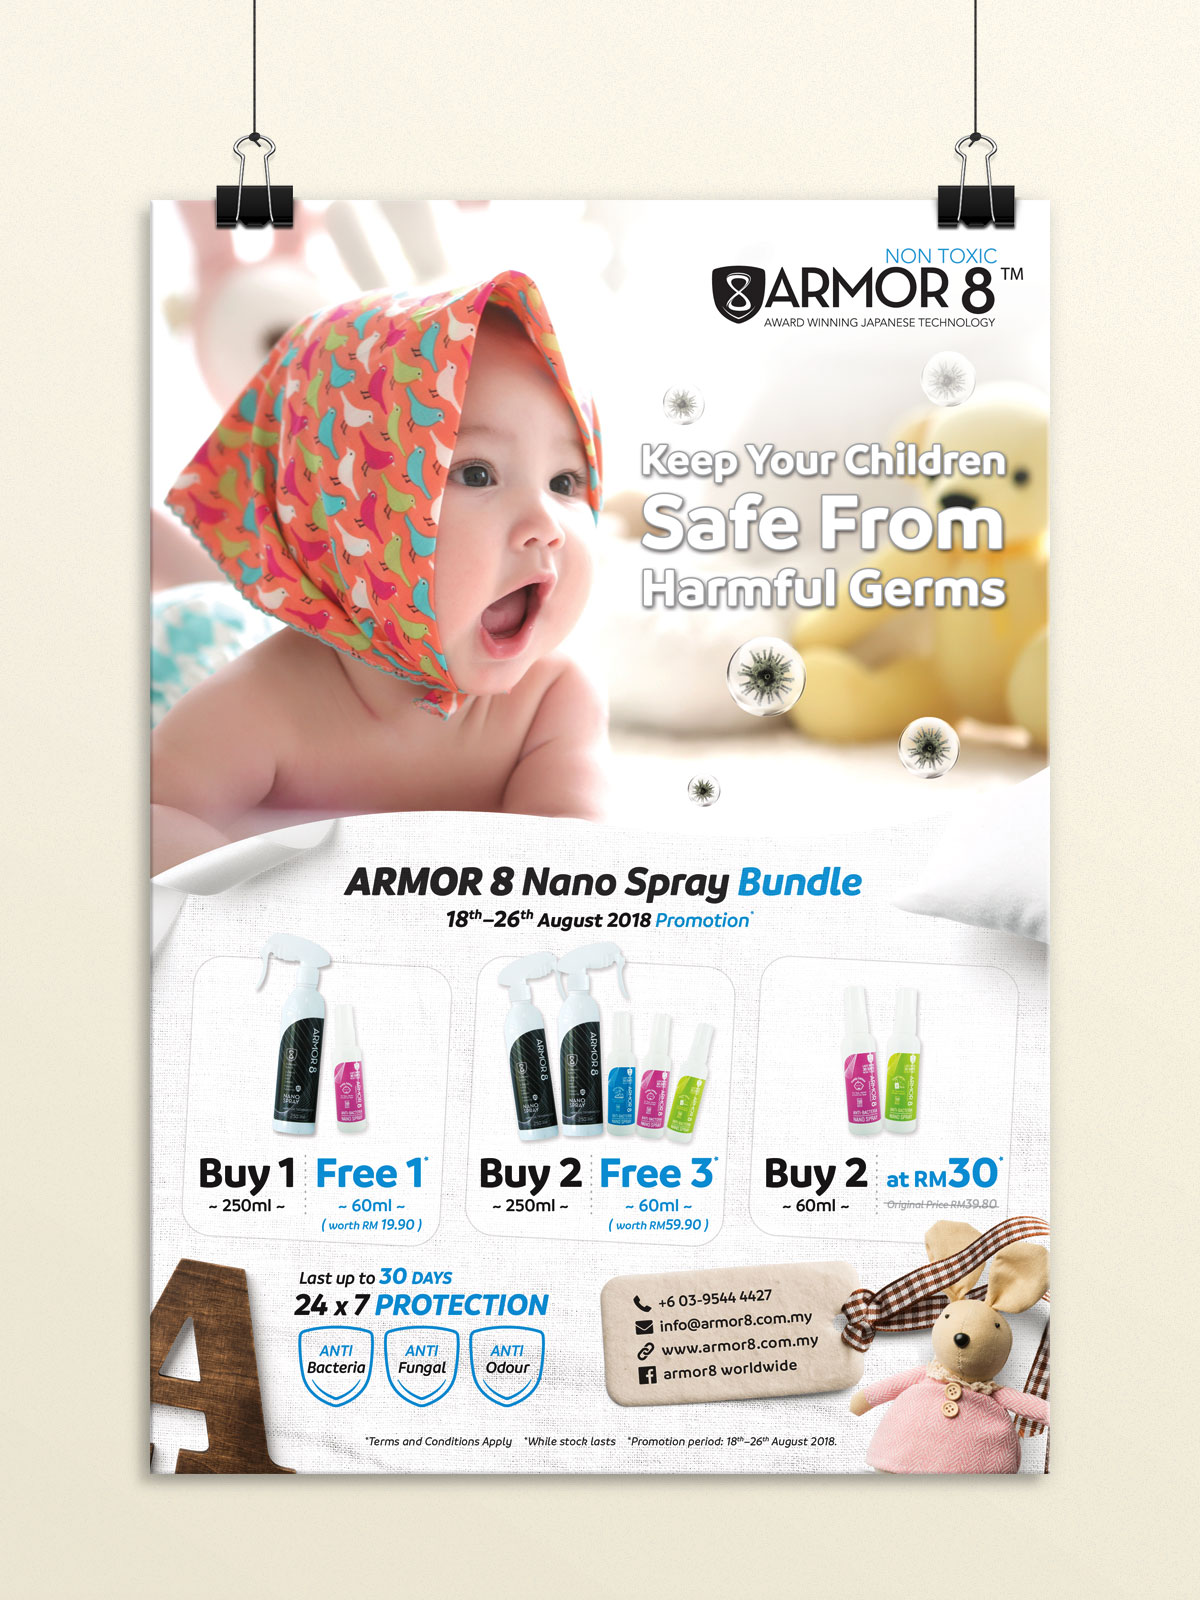 Armor8 Keeps Your Children Safe From Harmful Germs Poster Design 03